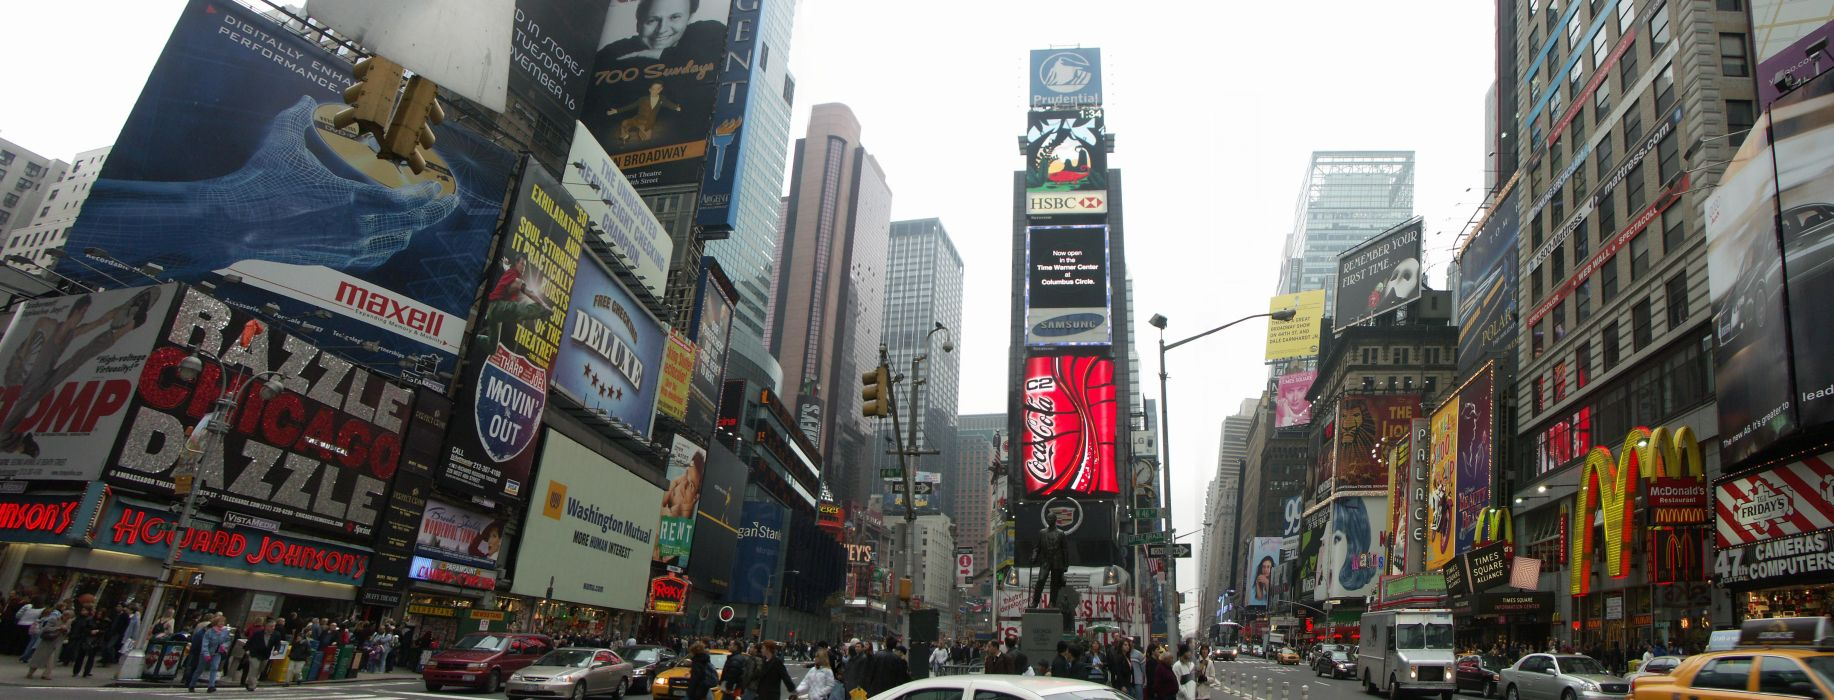 Times Square new york usa city cities neon lights traffic  j wallpaper